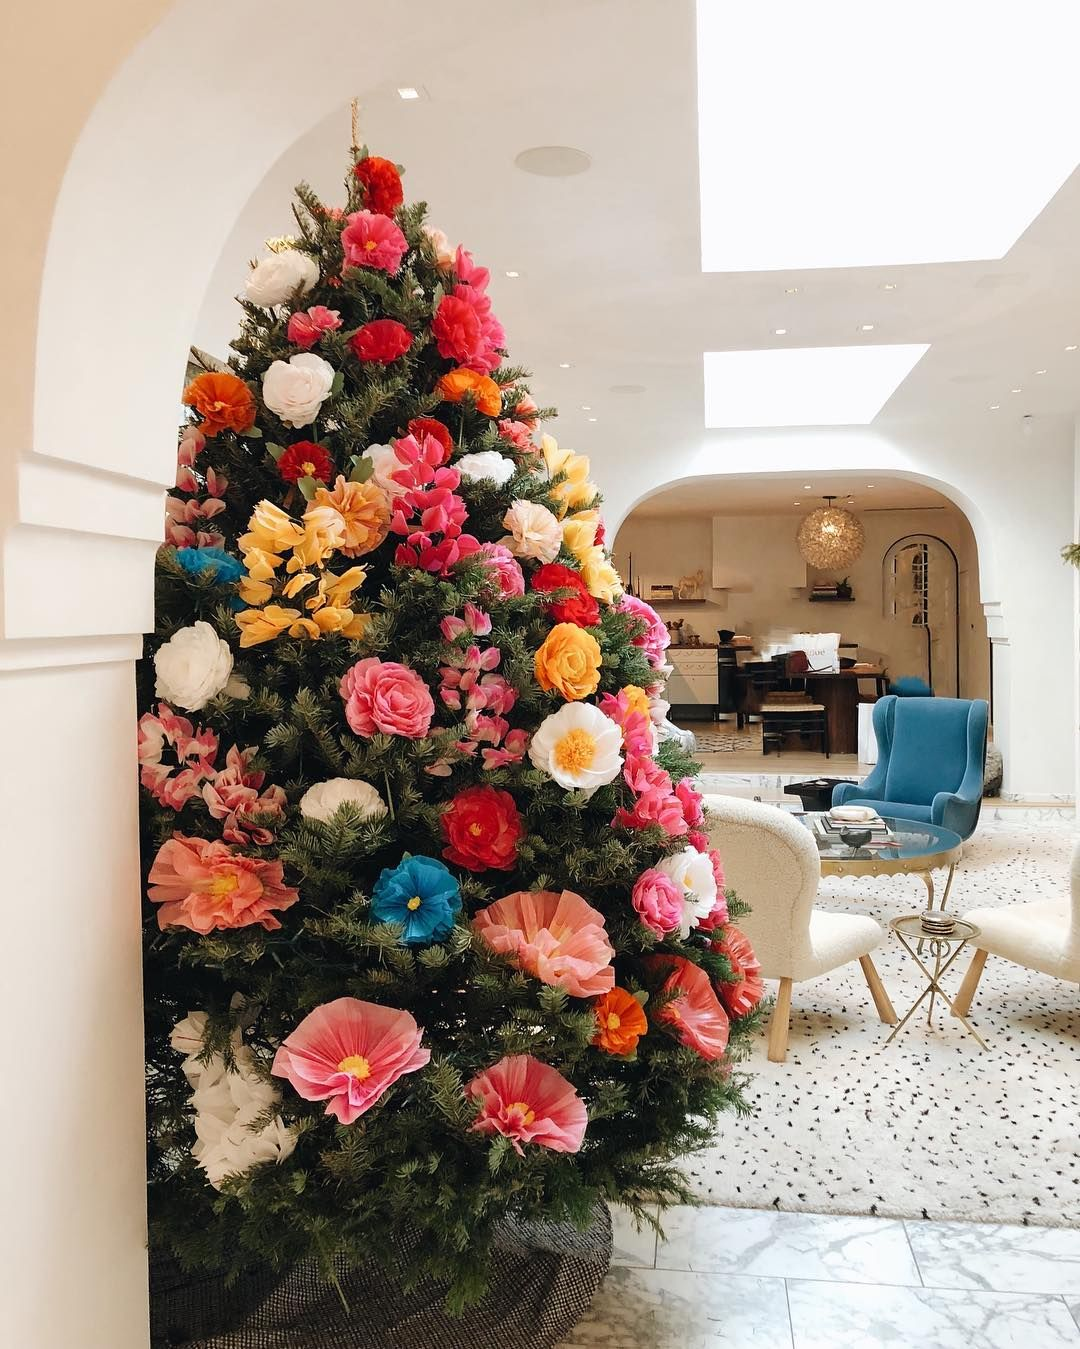 Christmas Tree Decorated With Paper Flowers Floral Christmas Tree Traditional Christmas Decorations Christmas Tree Flowers